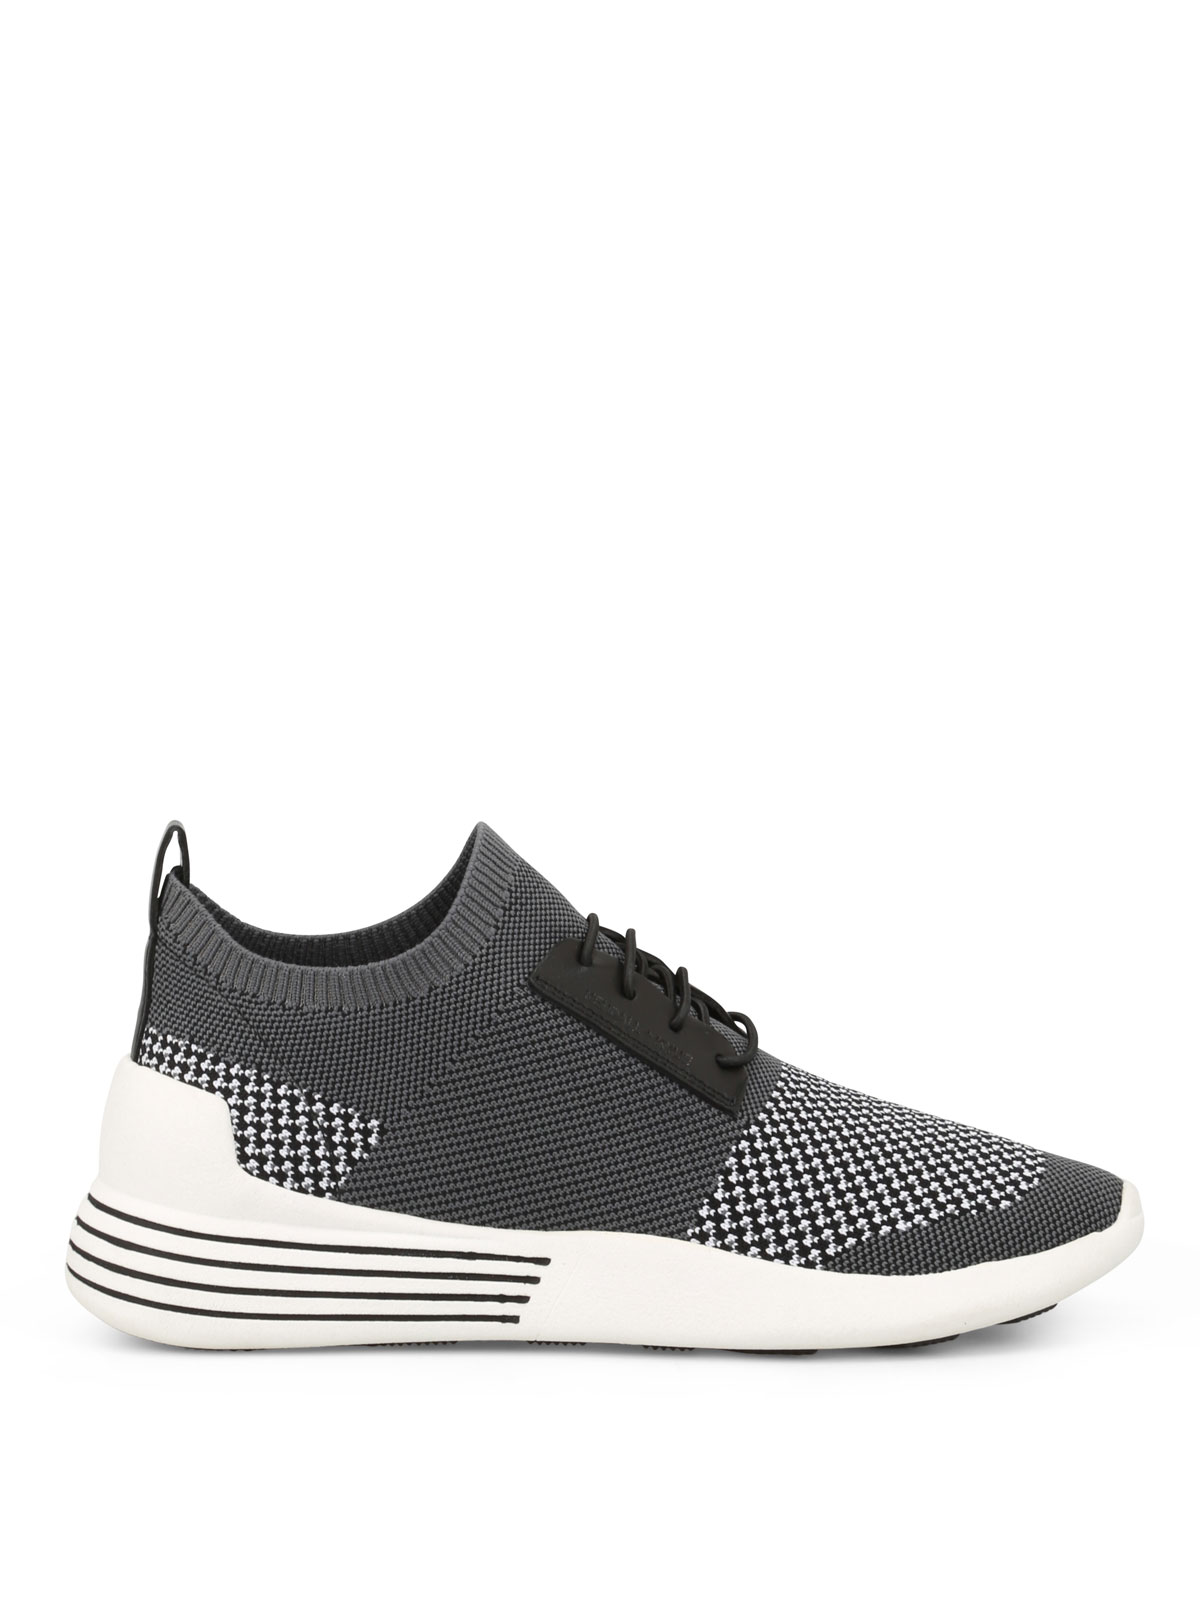 Kendall + Kylie BRANDY GREY SLIP-ON SNEAKERS